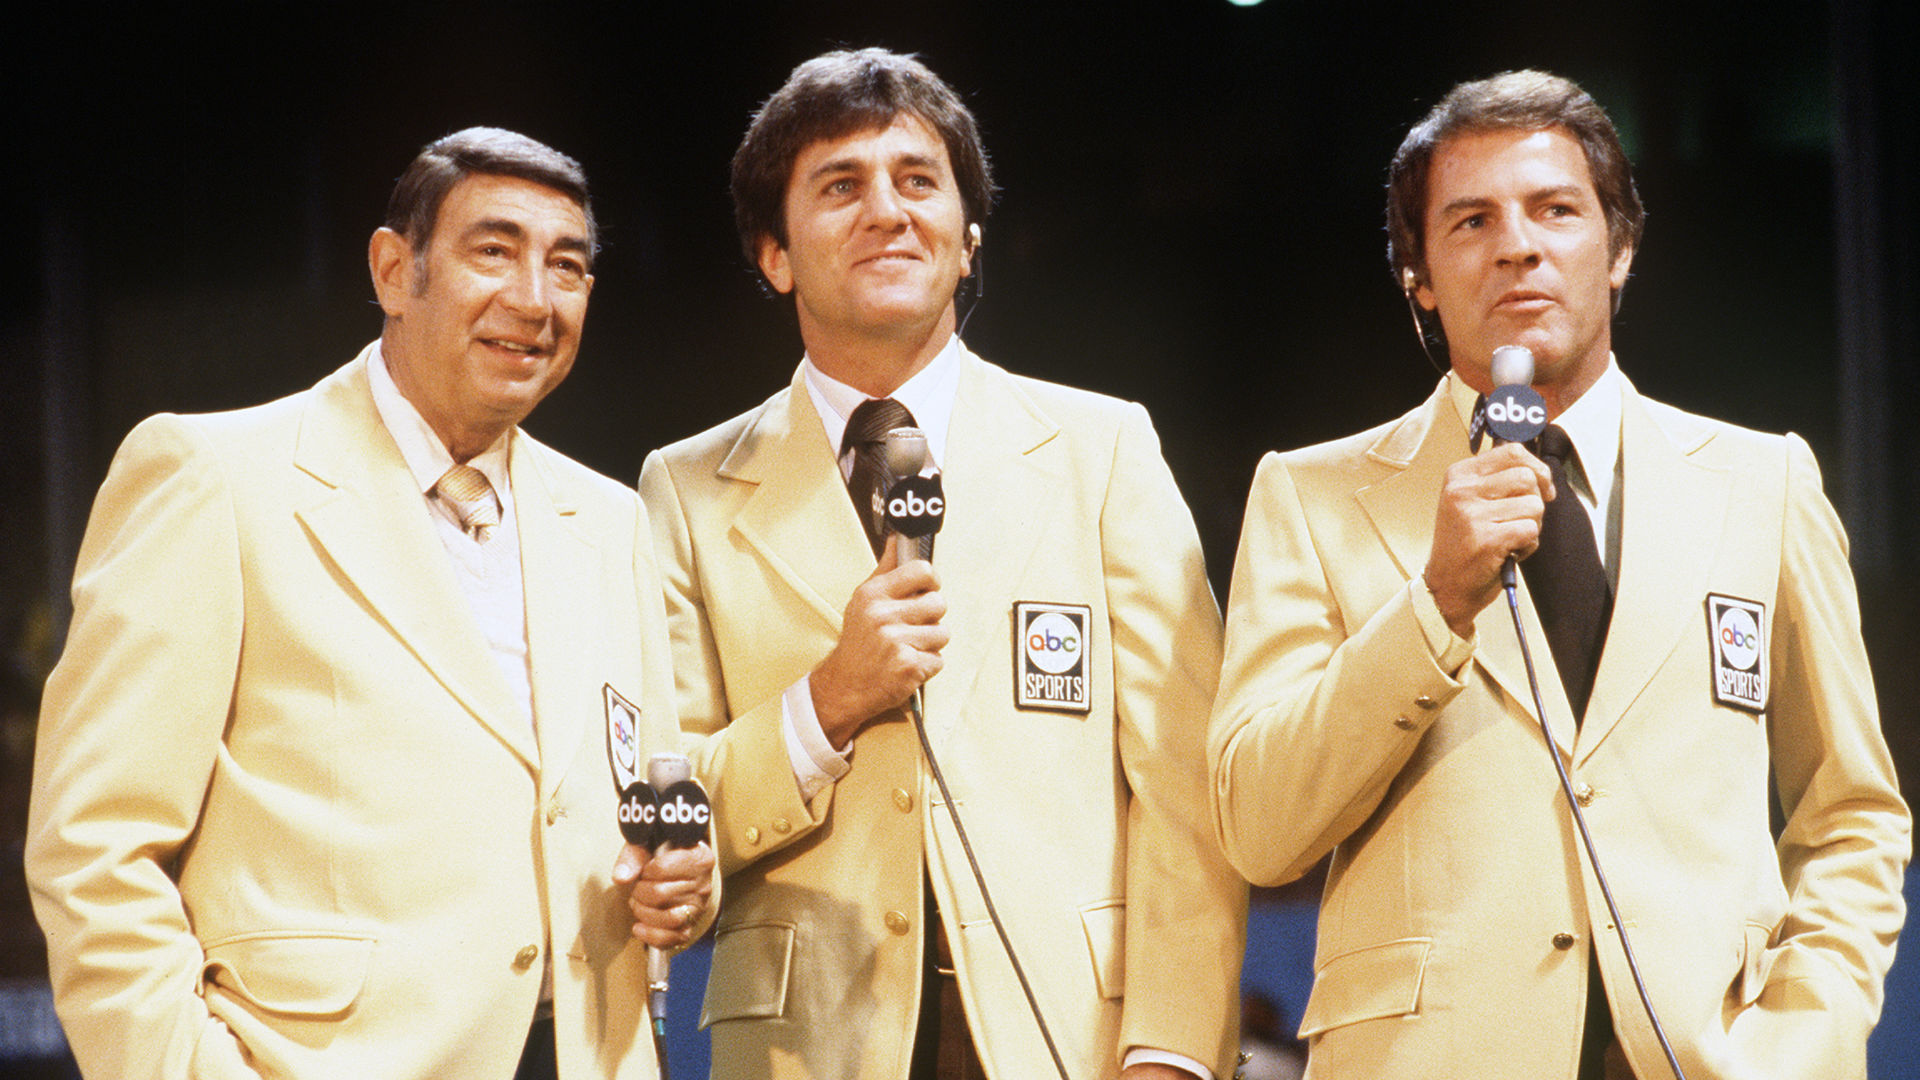 'The perfect fit': Glory days of 'Monday Night Football' with Cosell, Meredith and Gifford